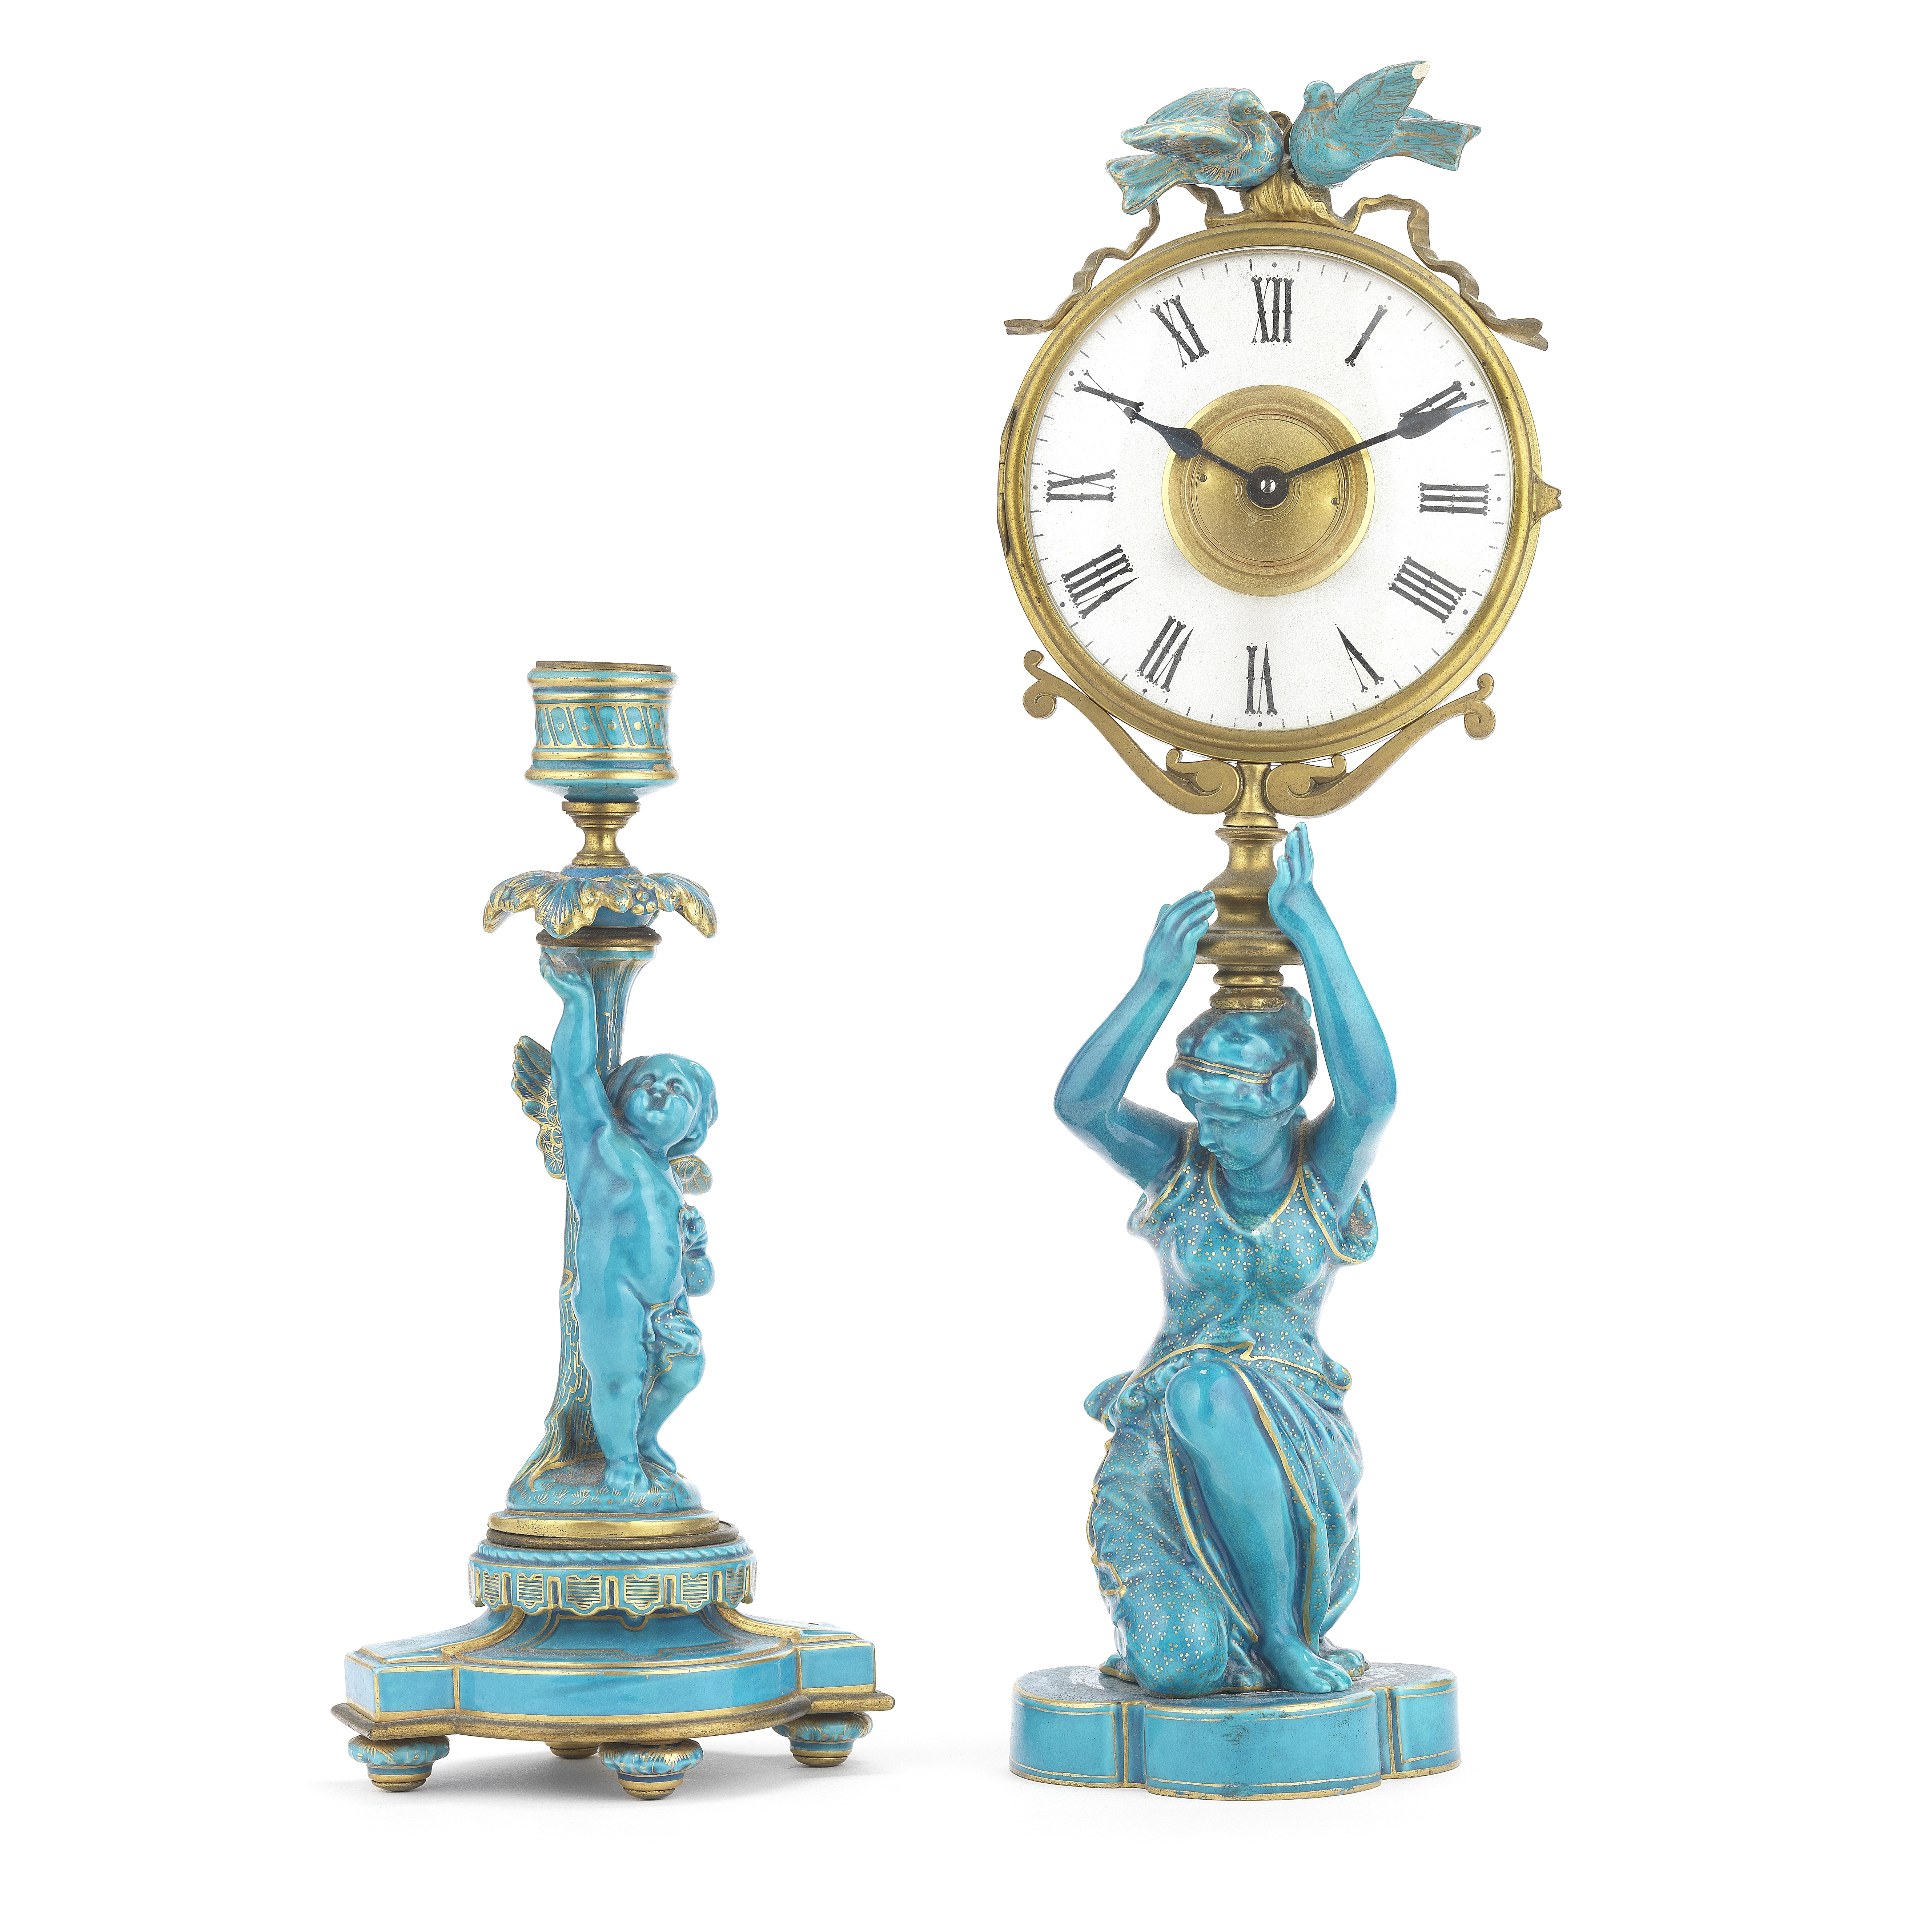 A gilt brass, frosted glass and turquoise glazed ceramic figural mystery time piece together with...